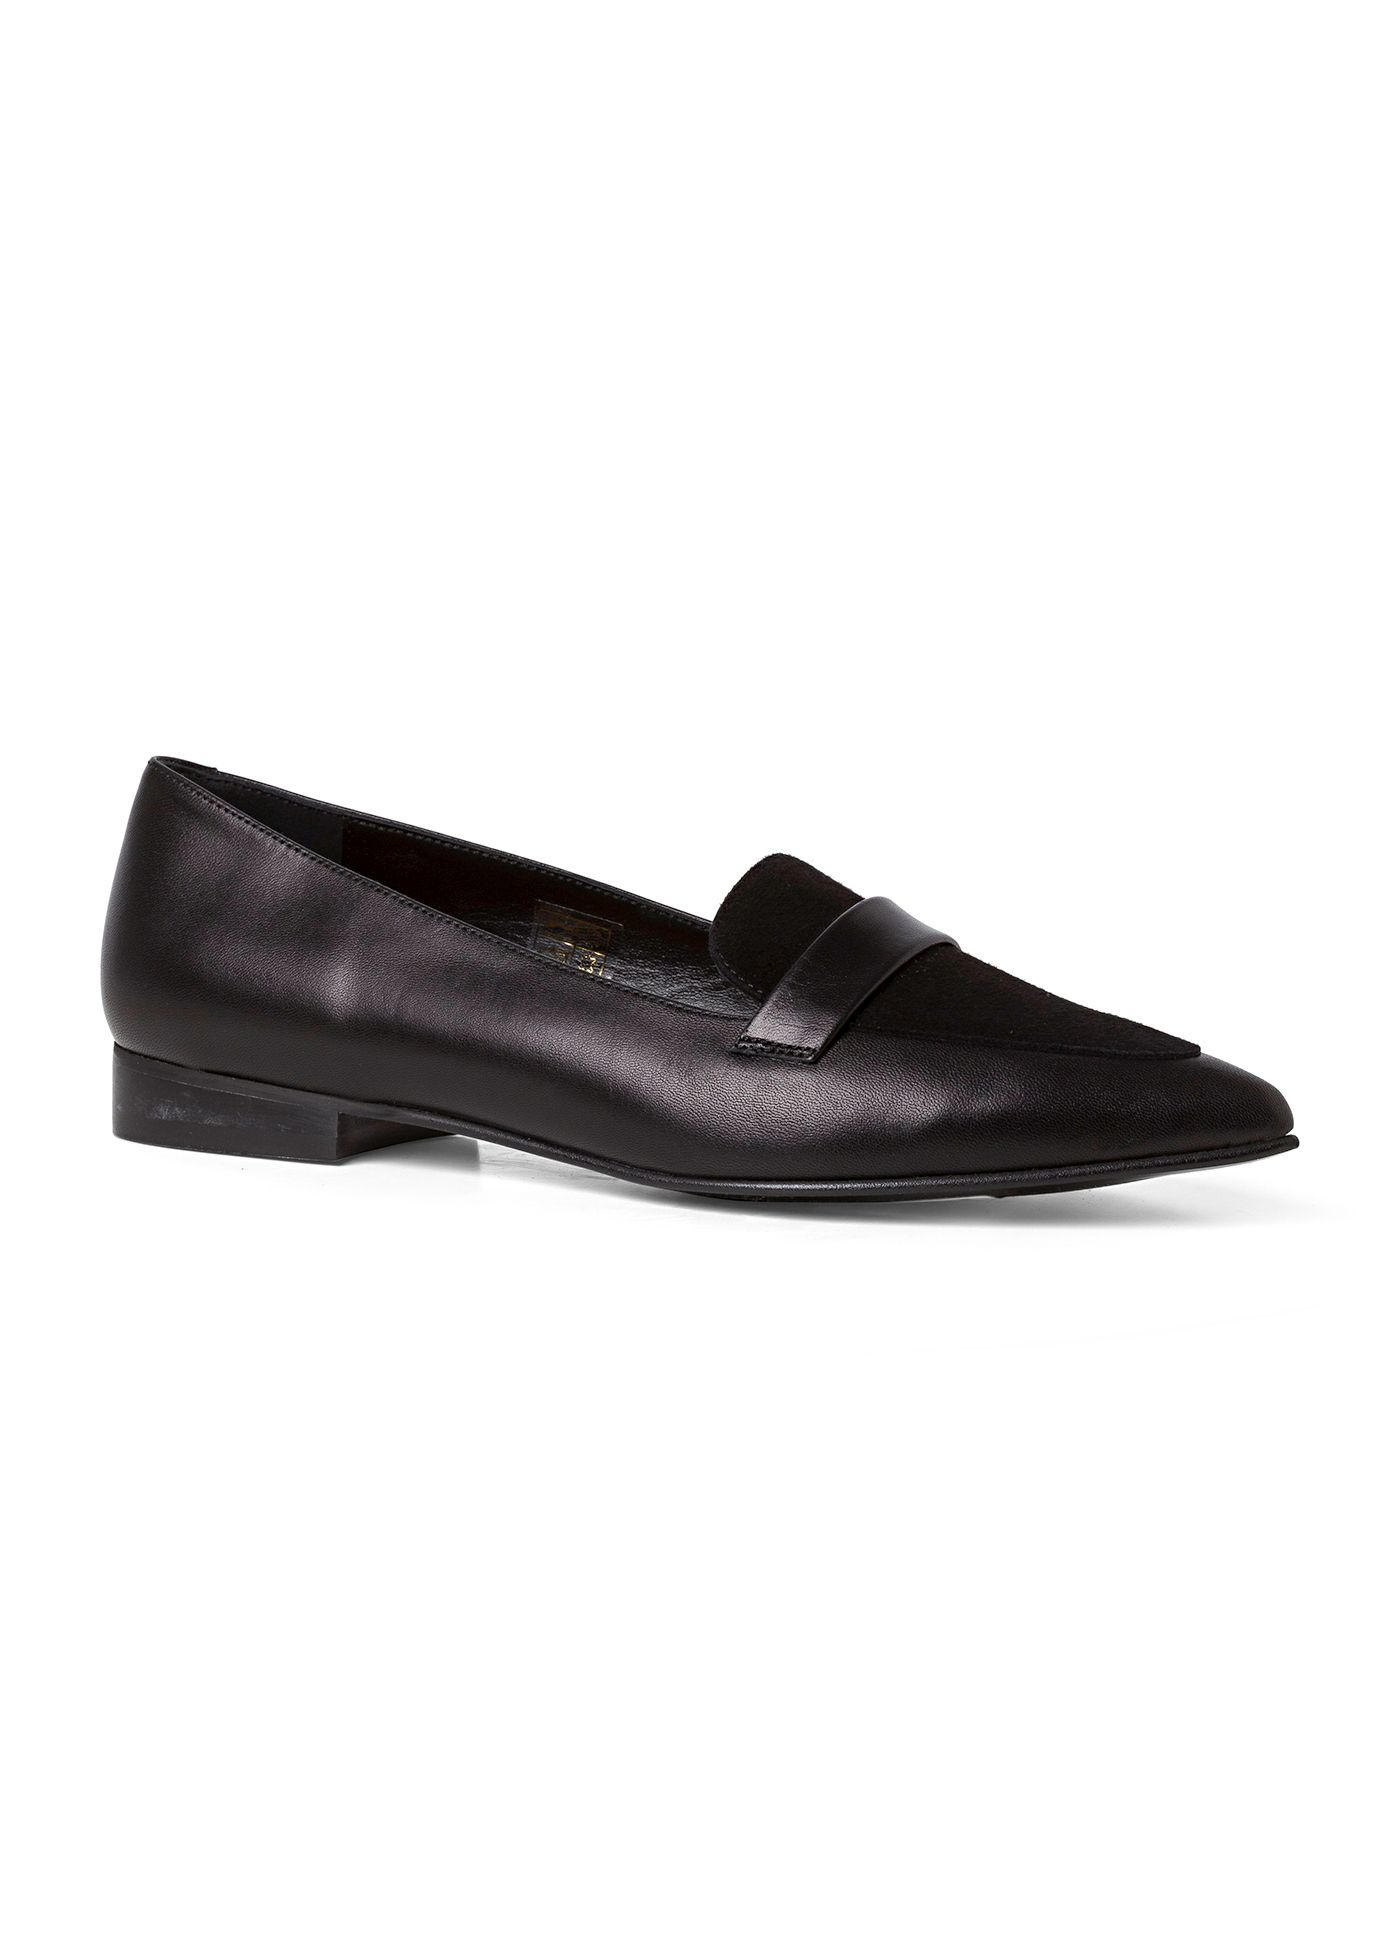 Alexandra II Loafer Nappa Suede Mix image number 1